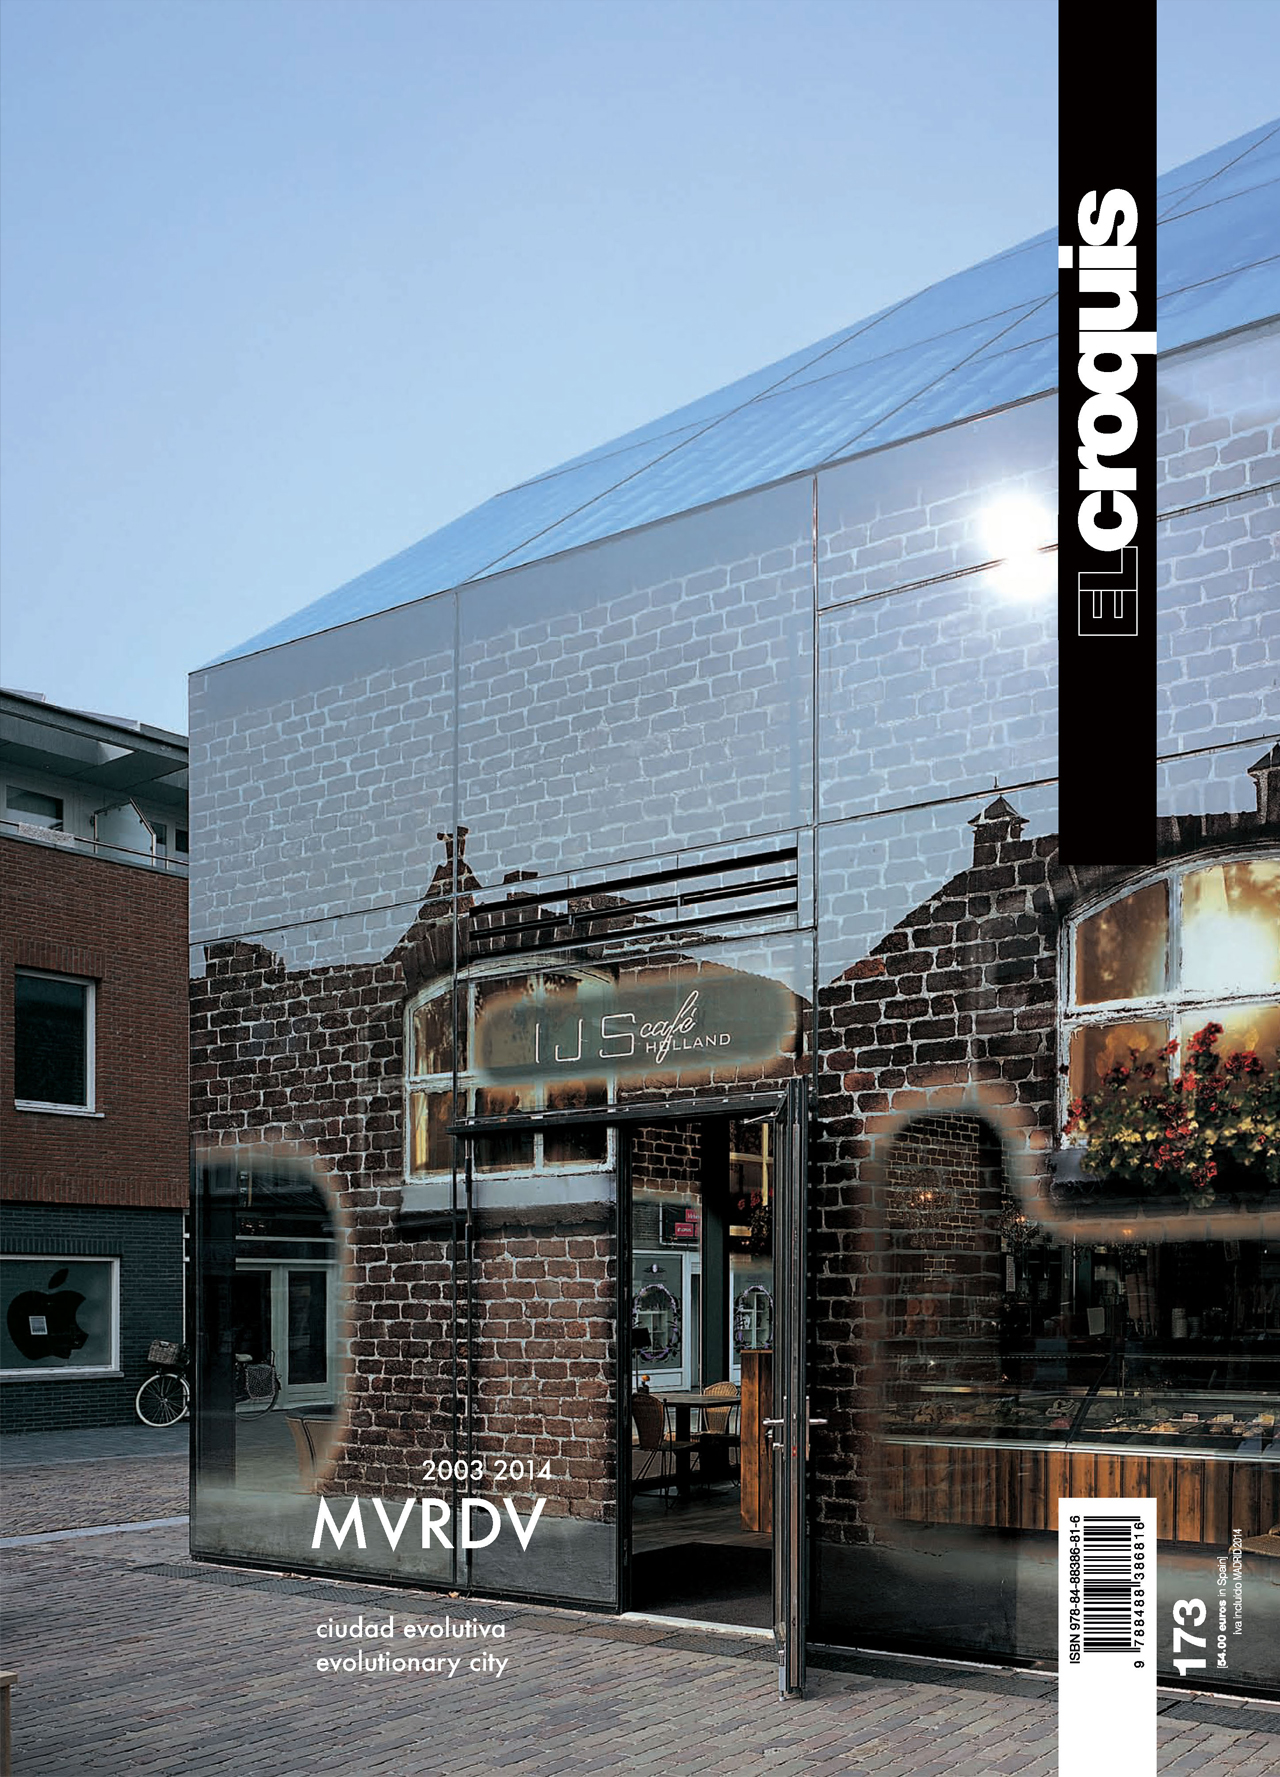 Evolutionary Cities: El Croquis publishes third MVRDV issue